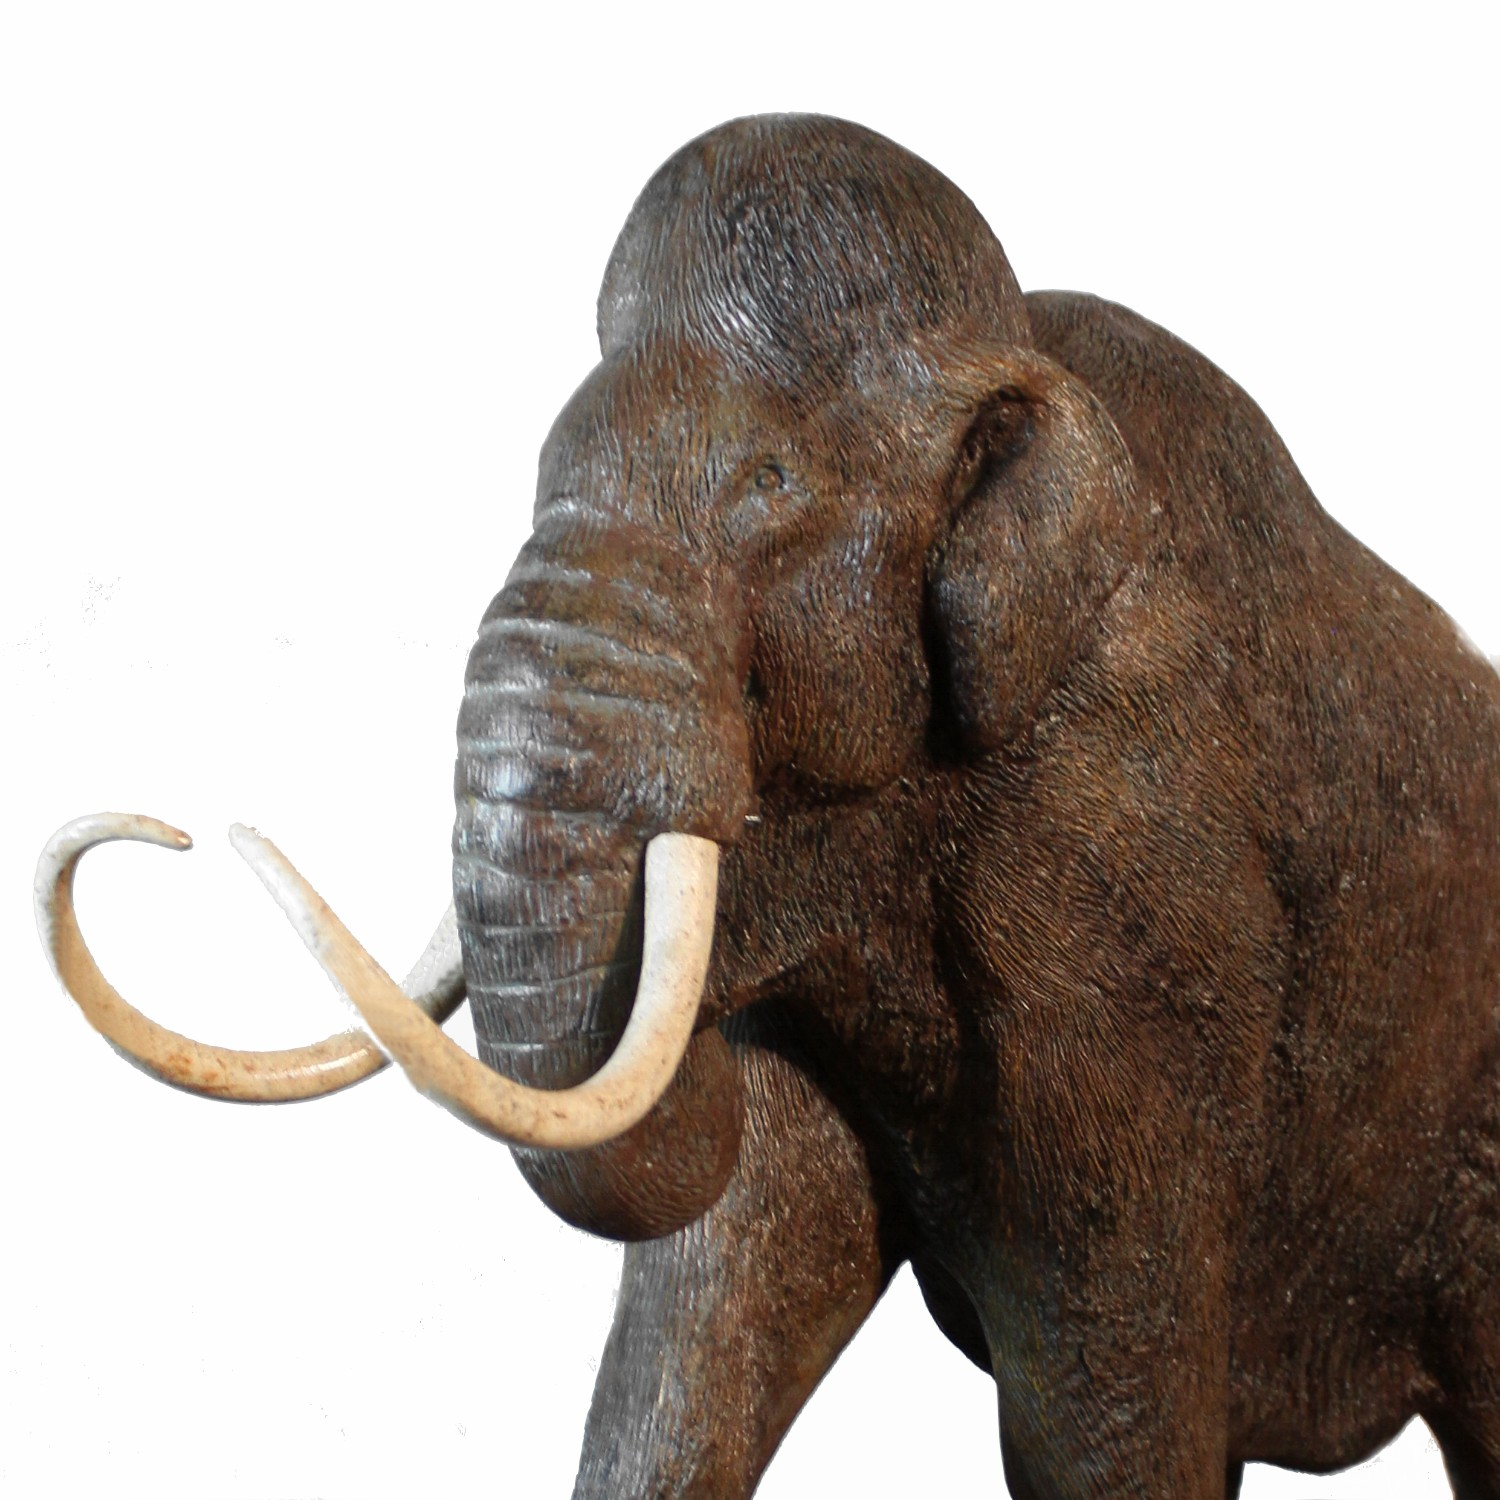 Wolly Mammoth Prehistoric Statue With Tusks Diminutive 27 Inches Long Sculpture The Kings Bay